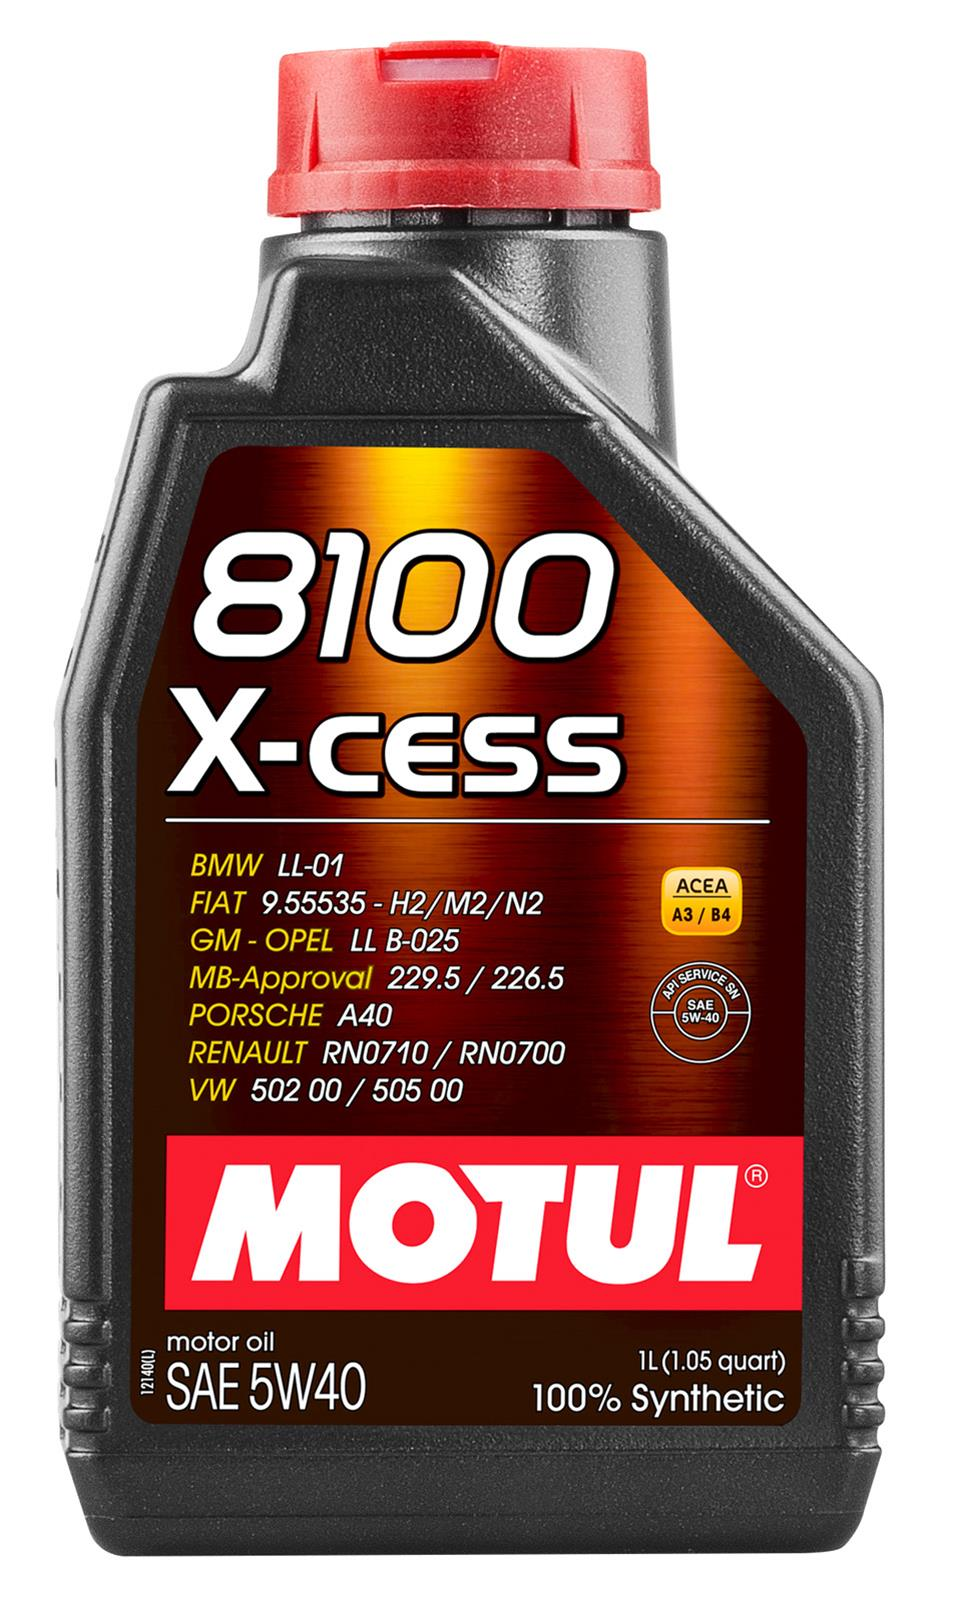 hight resolution of motul 8100 x cess motor oil 102784 free shipping on orders over 99 at summit racing